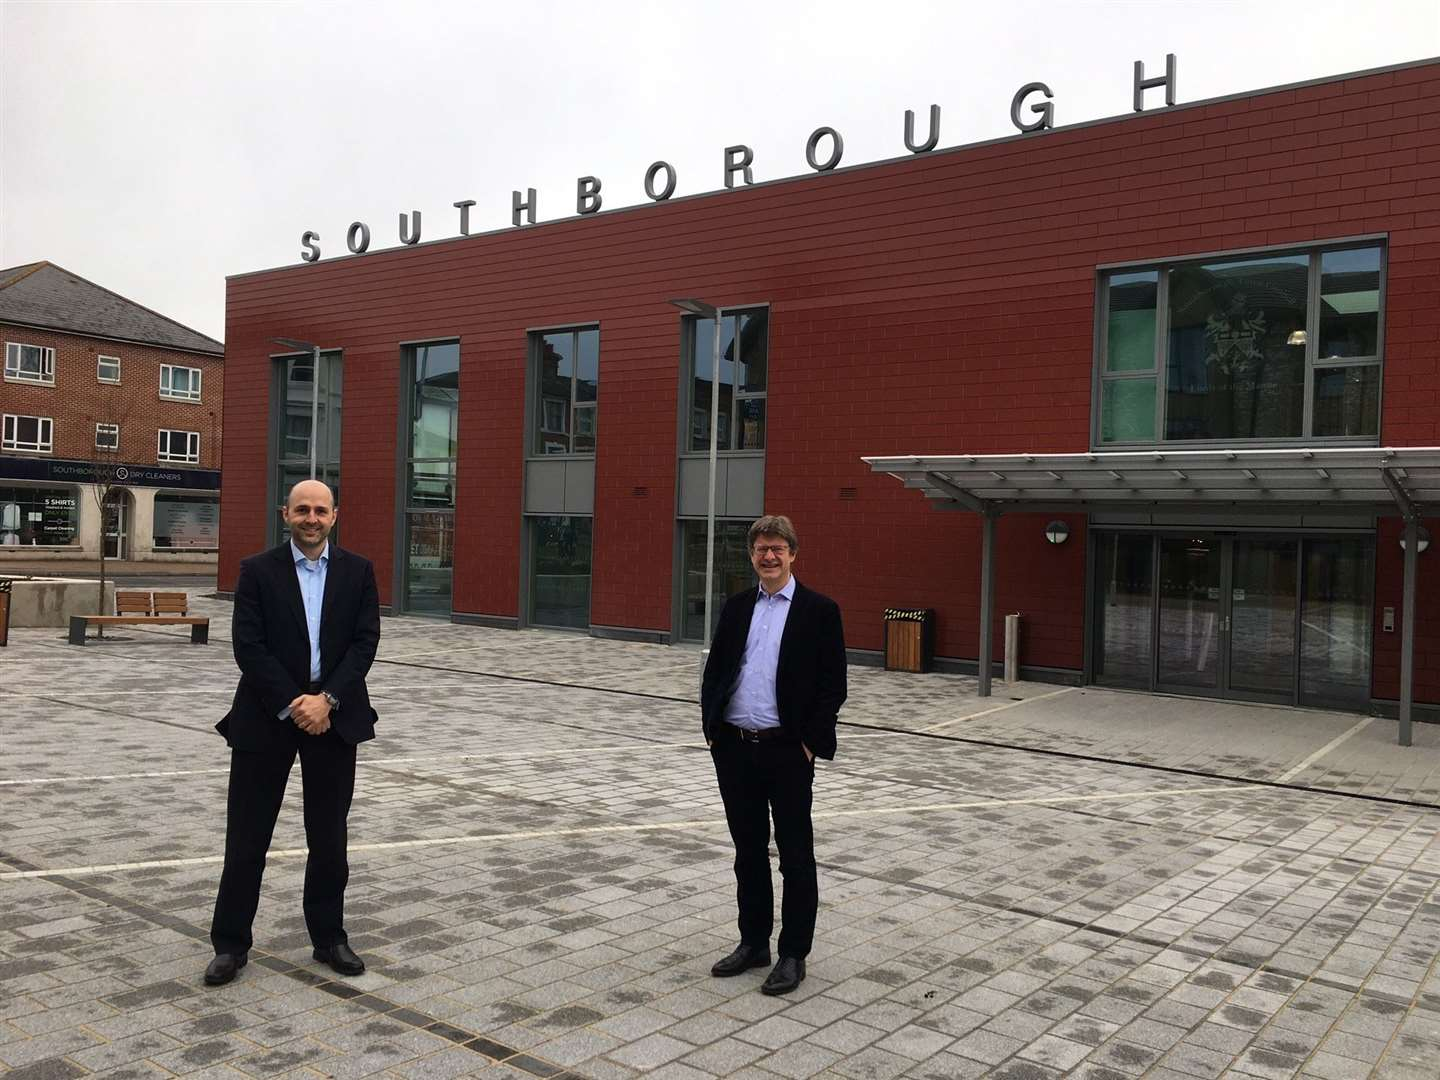 The new centre's project manager Jonathan White with MP Greg Clark outside the civic centre